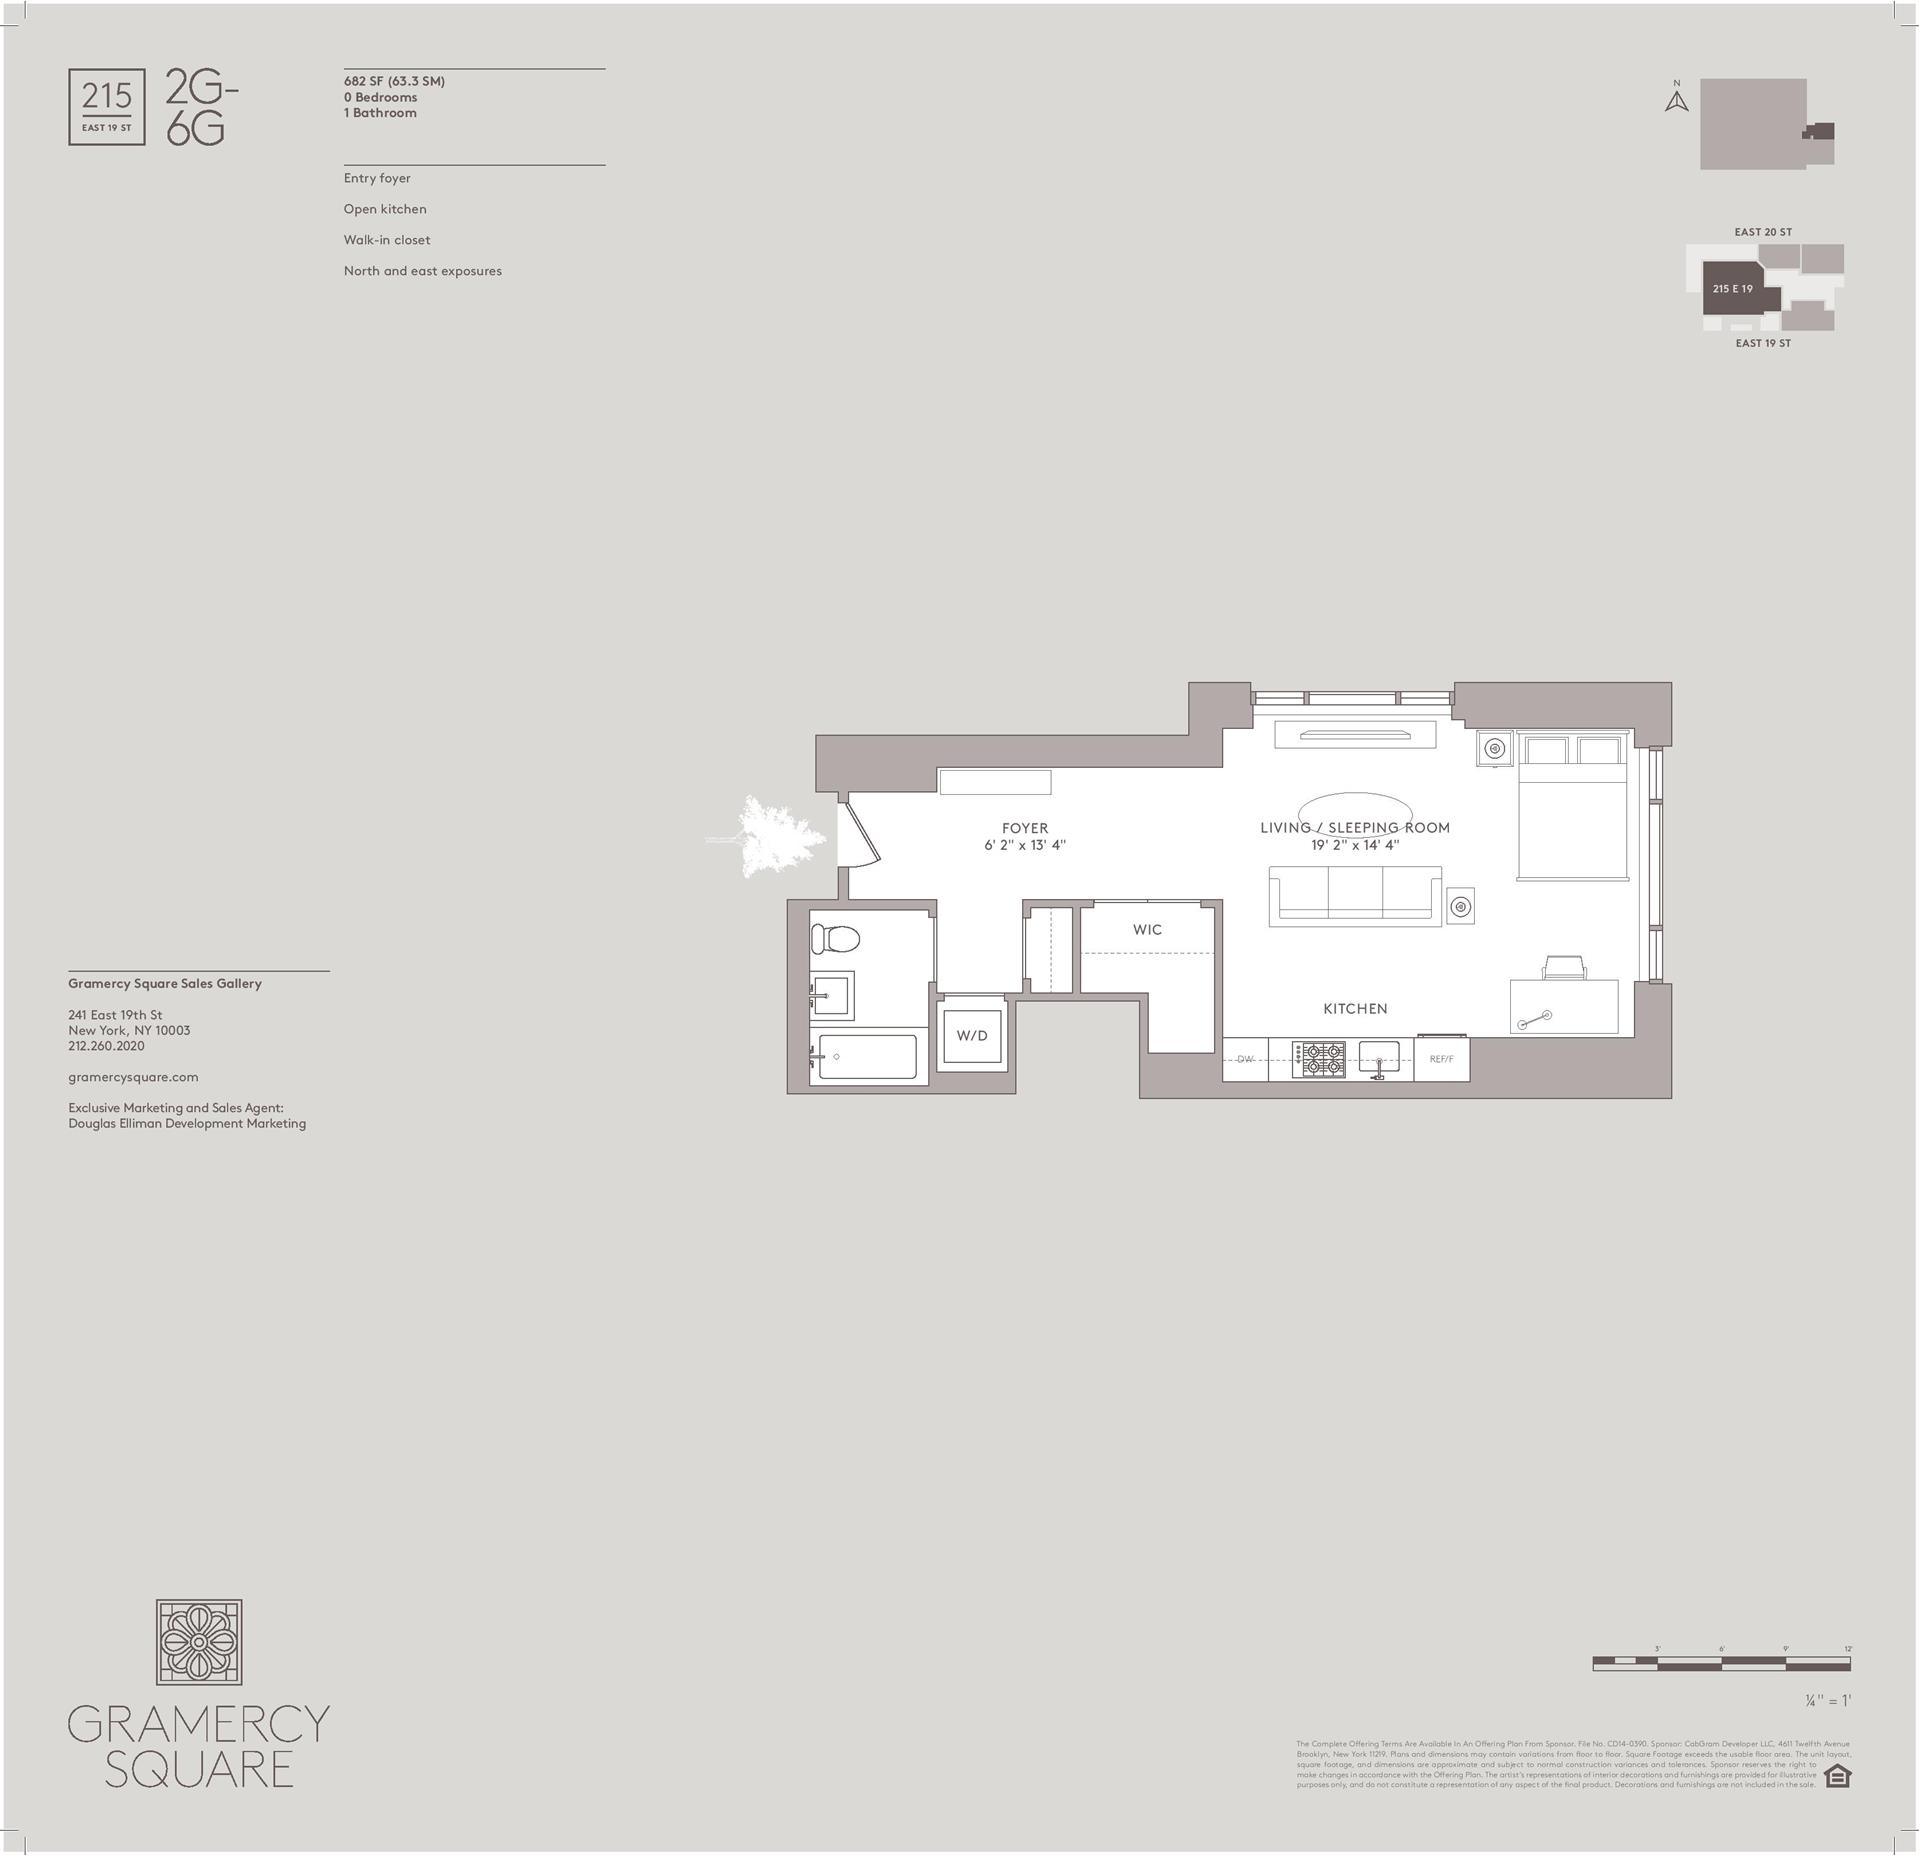 Floor plan of Gramercy Square, 215 East 19th St, 4G - Gramercy - Union Square, New York